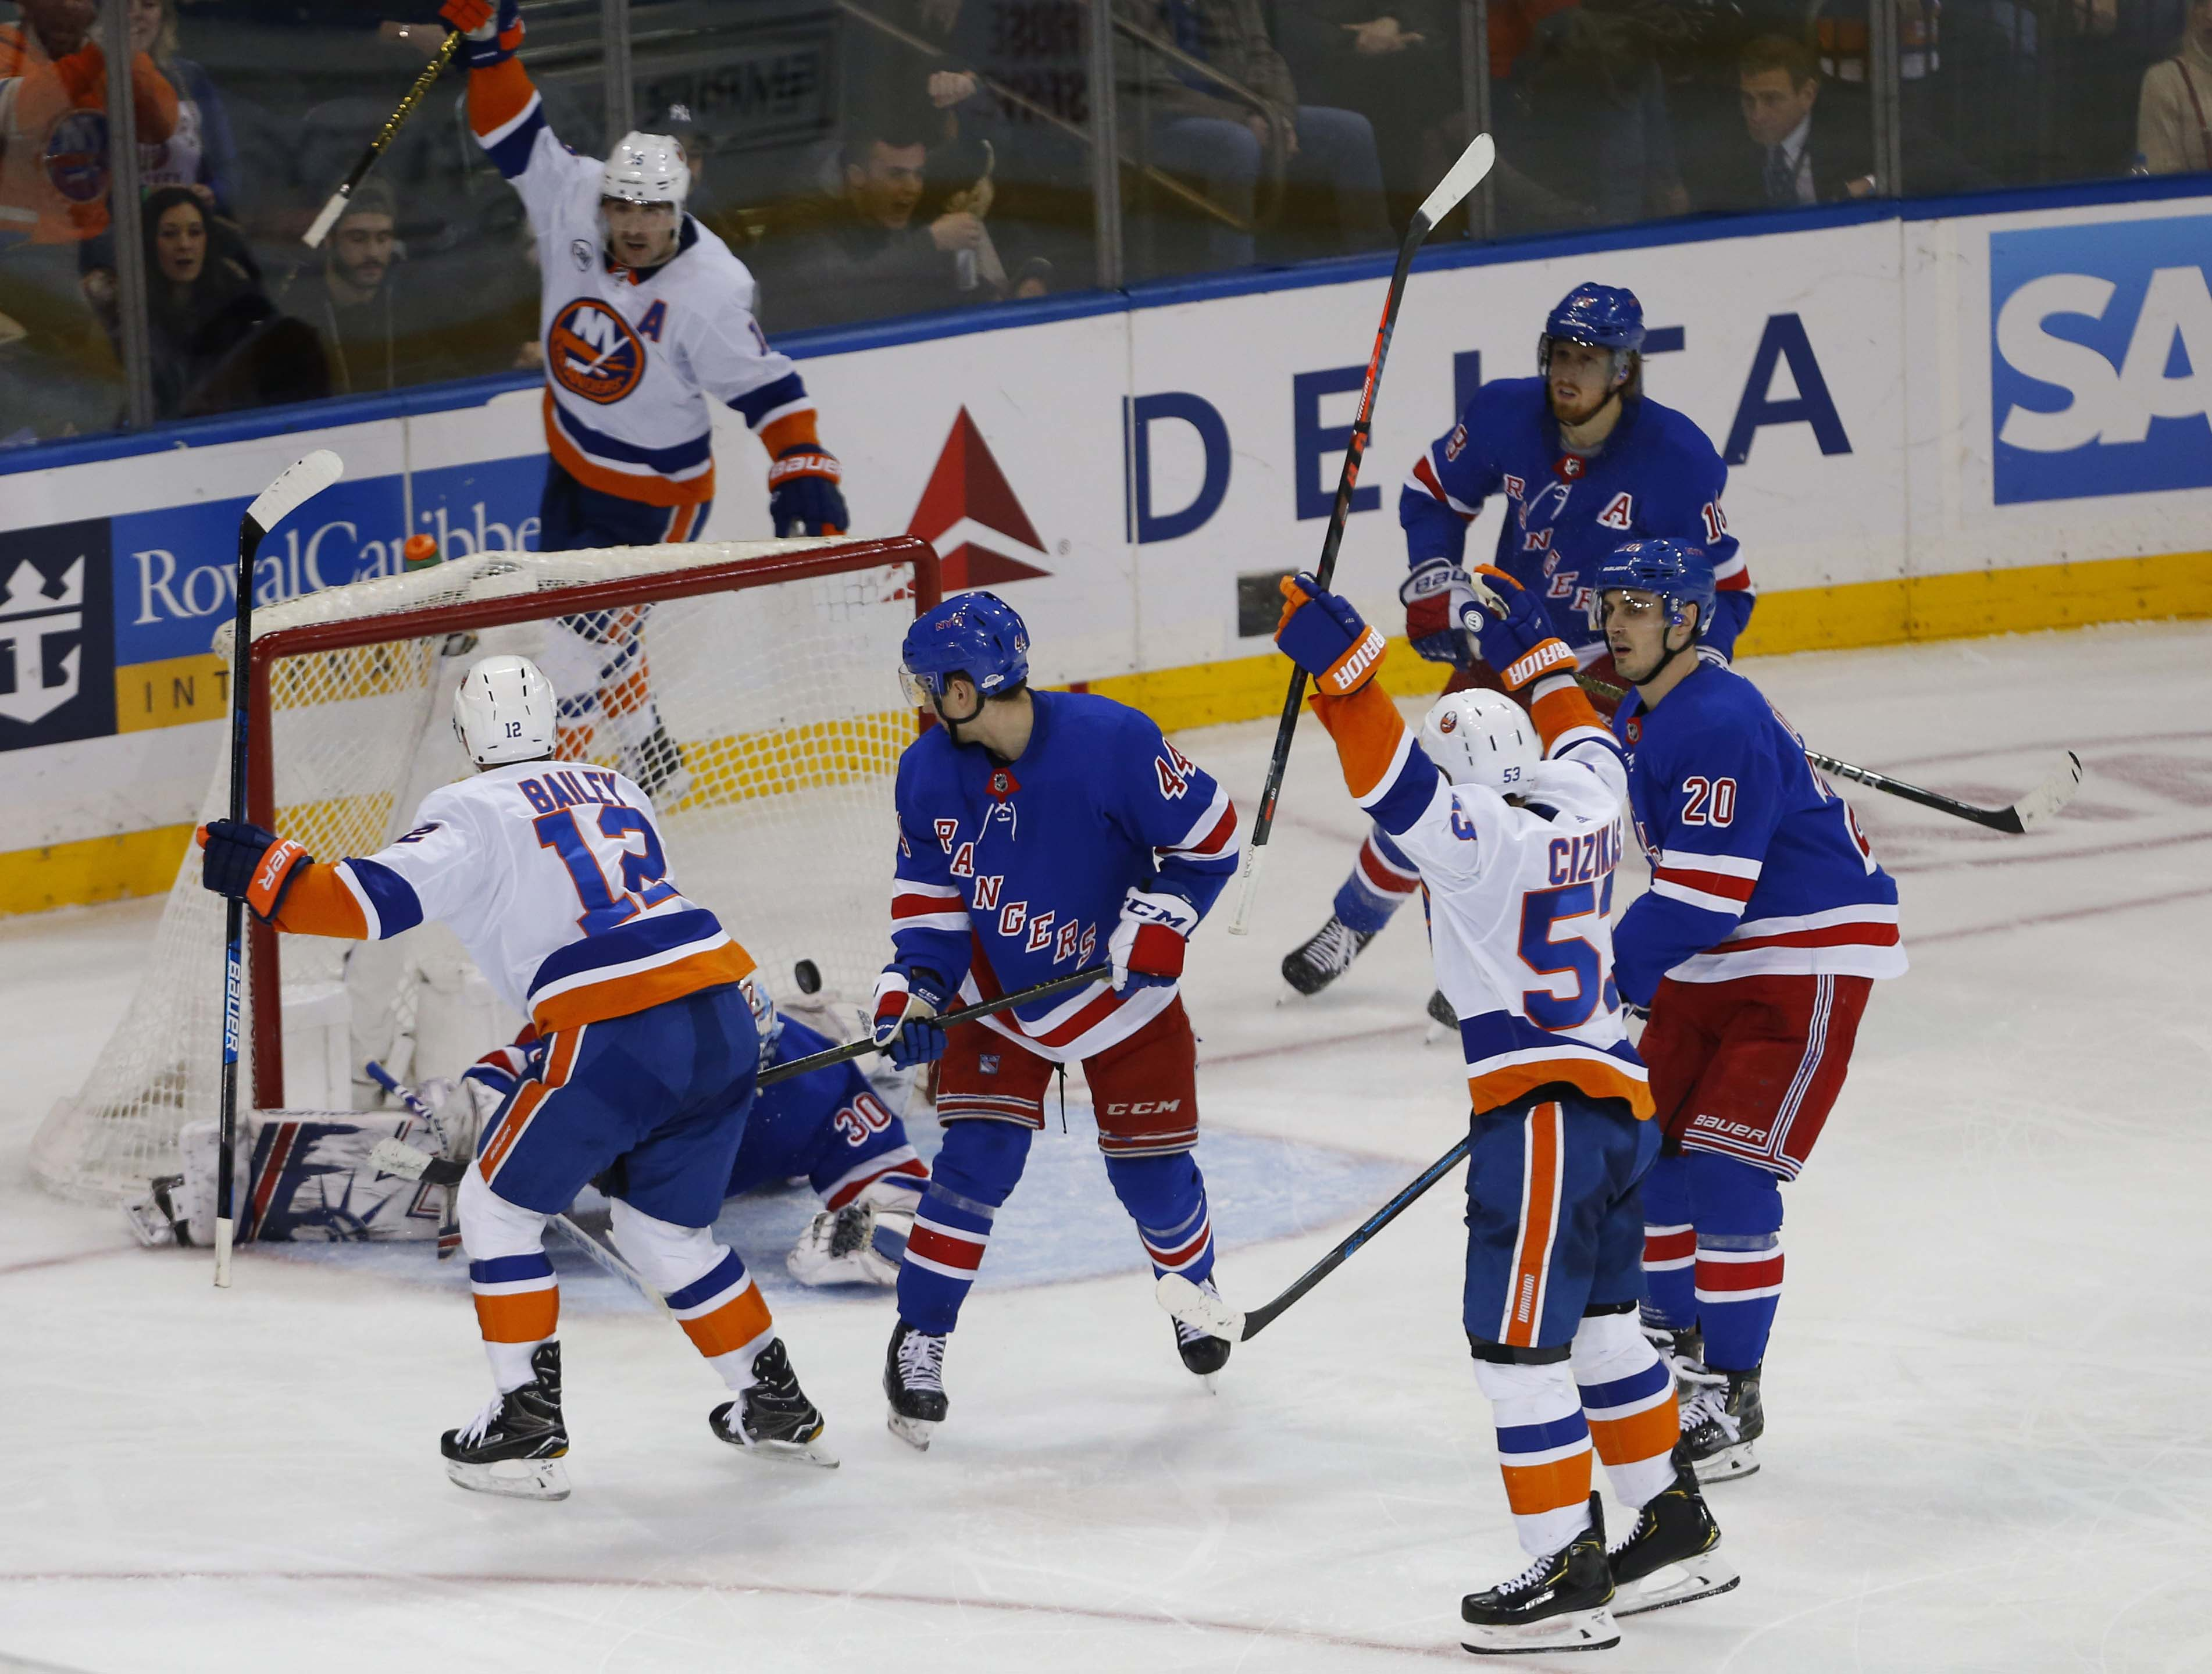 Jan 10, 2019; New York, NY, USA; New York Islanders right wing Josh Bailey (12) scores a goal the game winning goal against New York Rangers goaltender Henrik Lundqvist (30) during the third period at Madison Square Garden. The New York Islanders won 4-3.